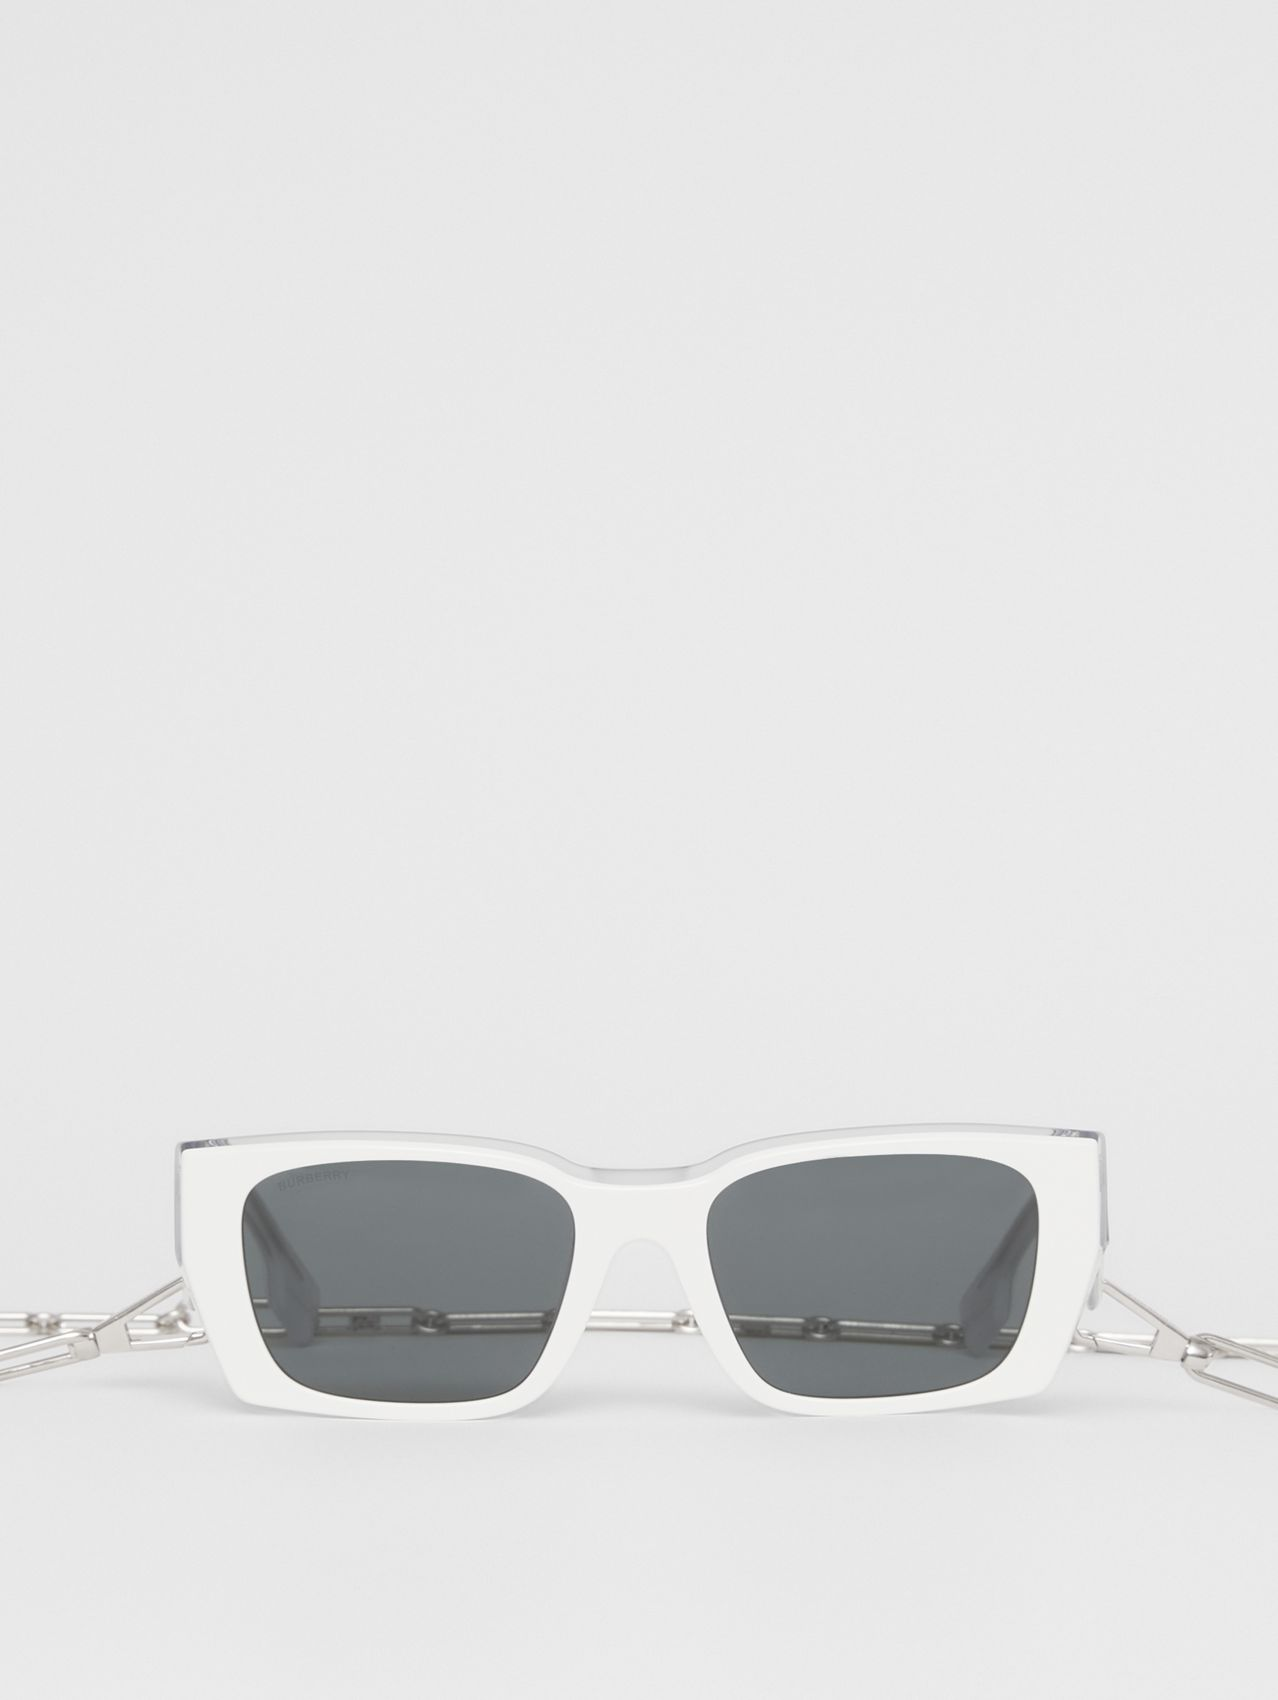 B Motif Rectangular Frame Sunglasses with Chain in White